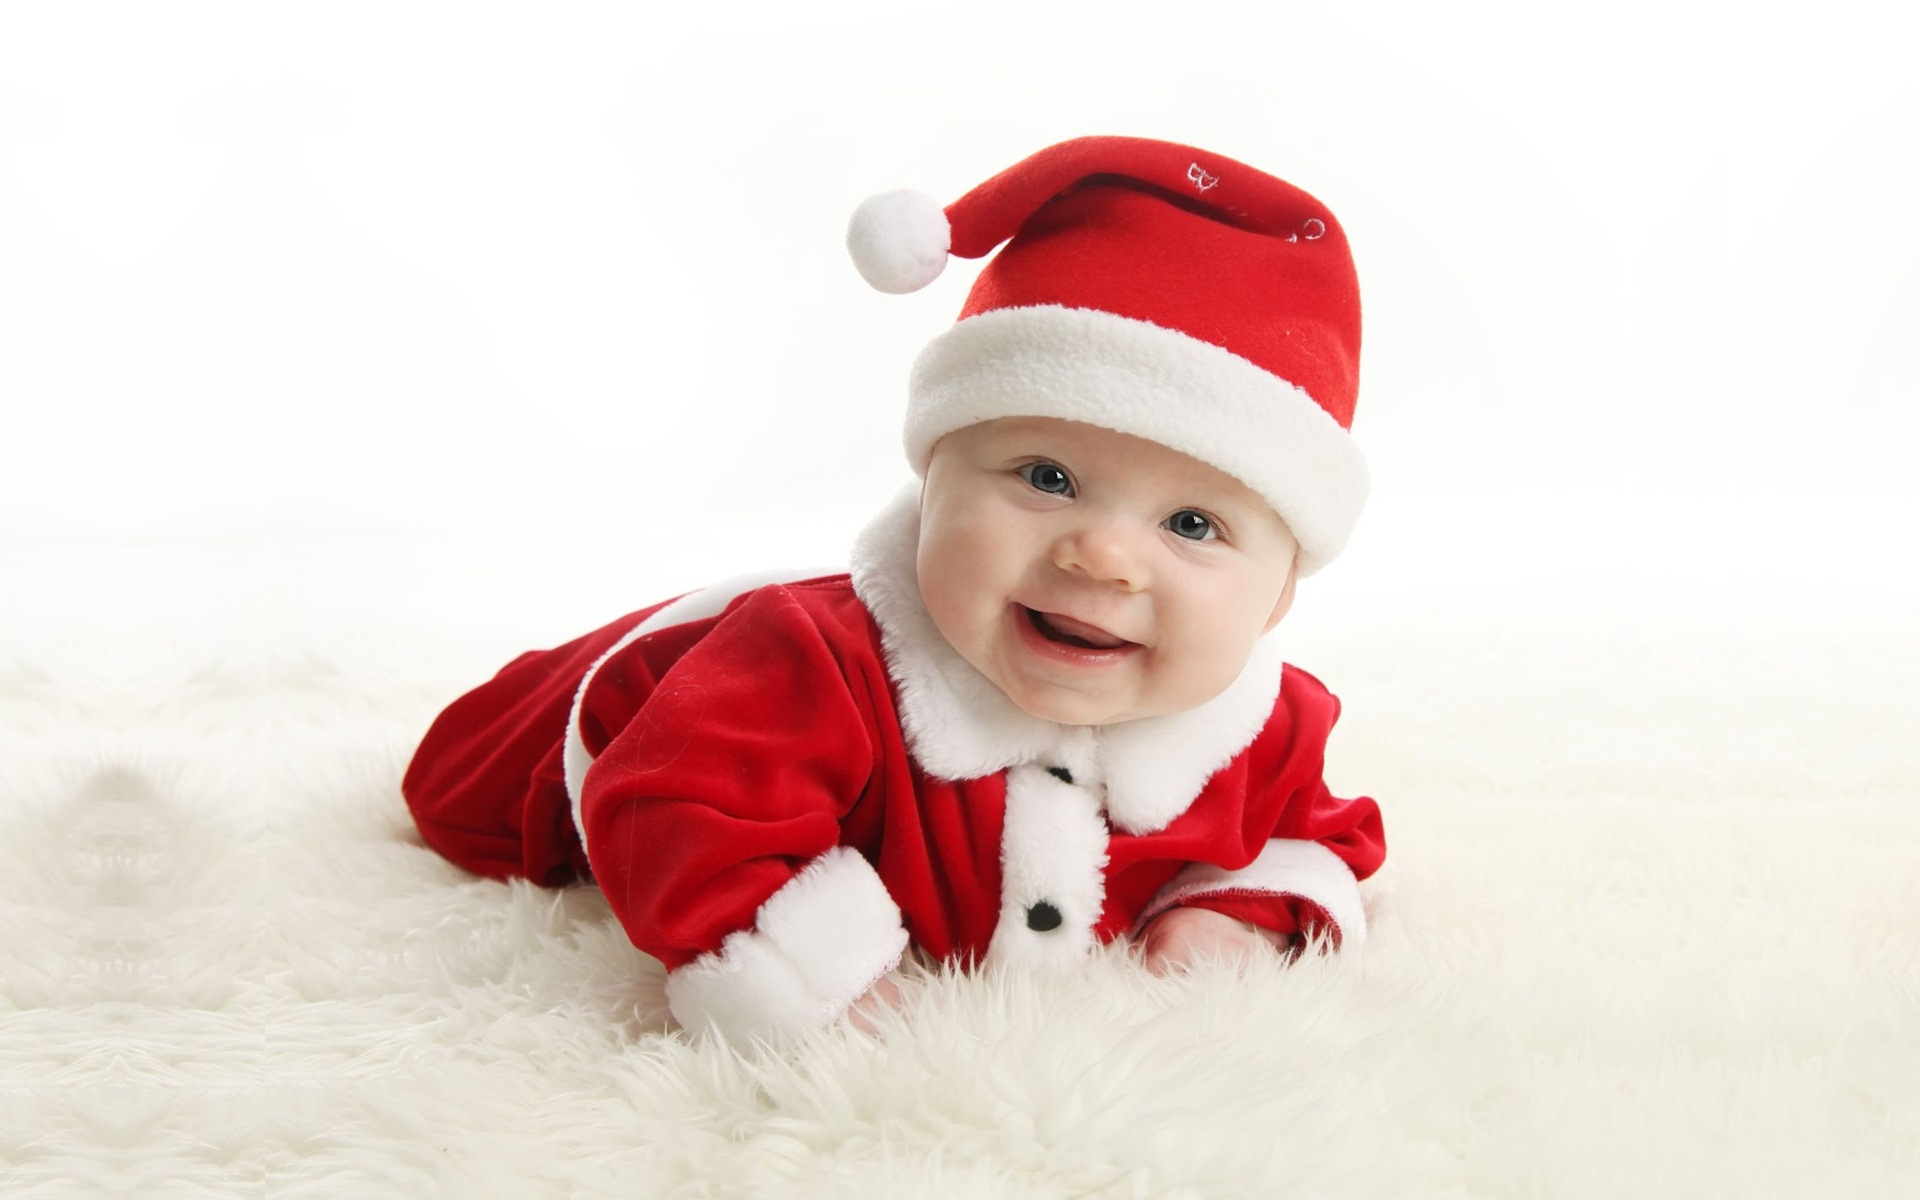 Christmas Baby Images Hd.Christmas Baby Hd Wallpaper Background Image 1920x1200